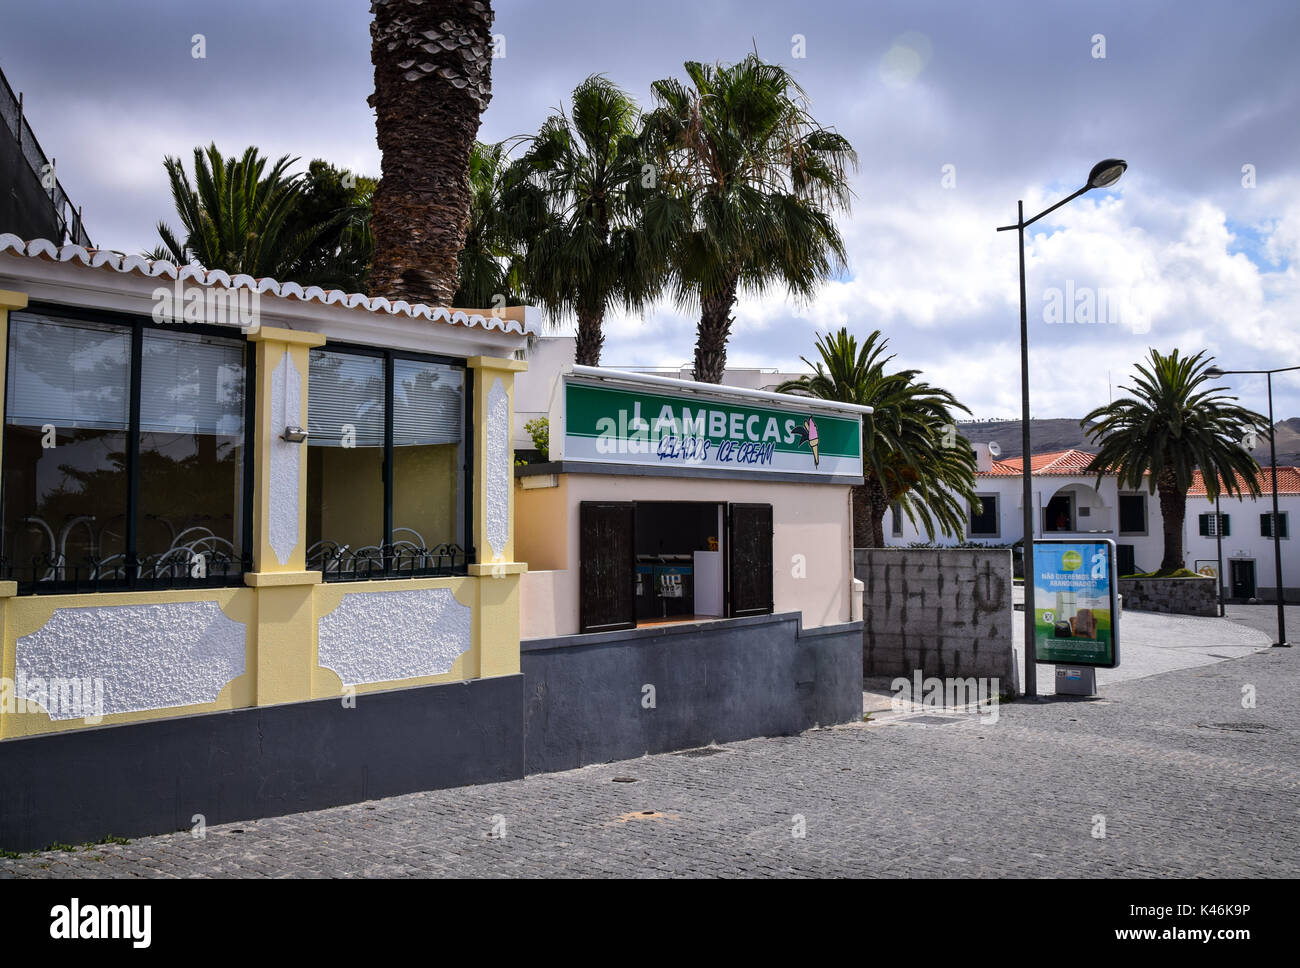 Lambecas ice cream parlour in the town square in Vila Baleira, Porto Santo Island, Portugal - Stock Image